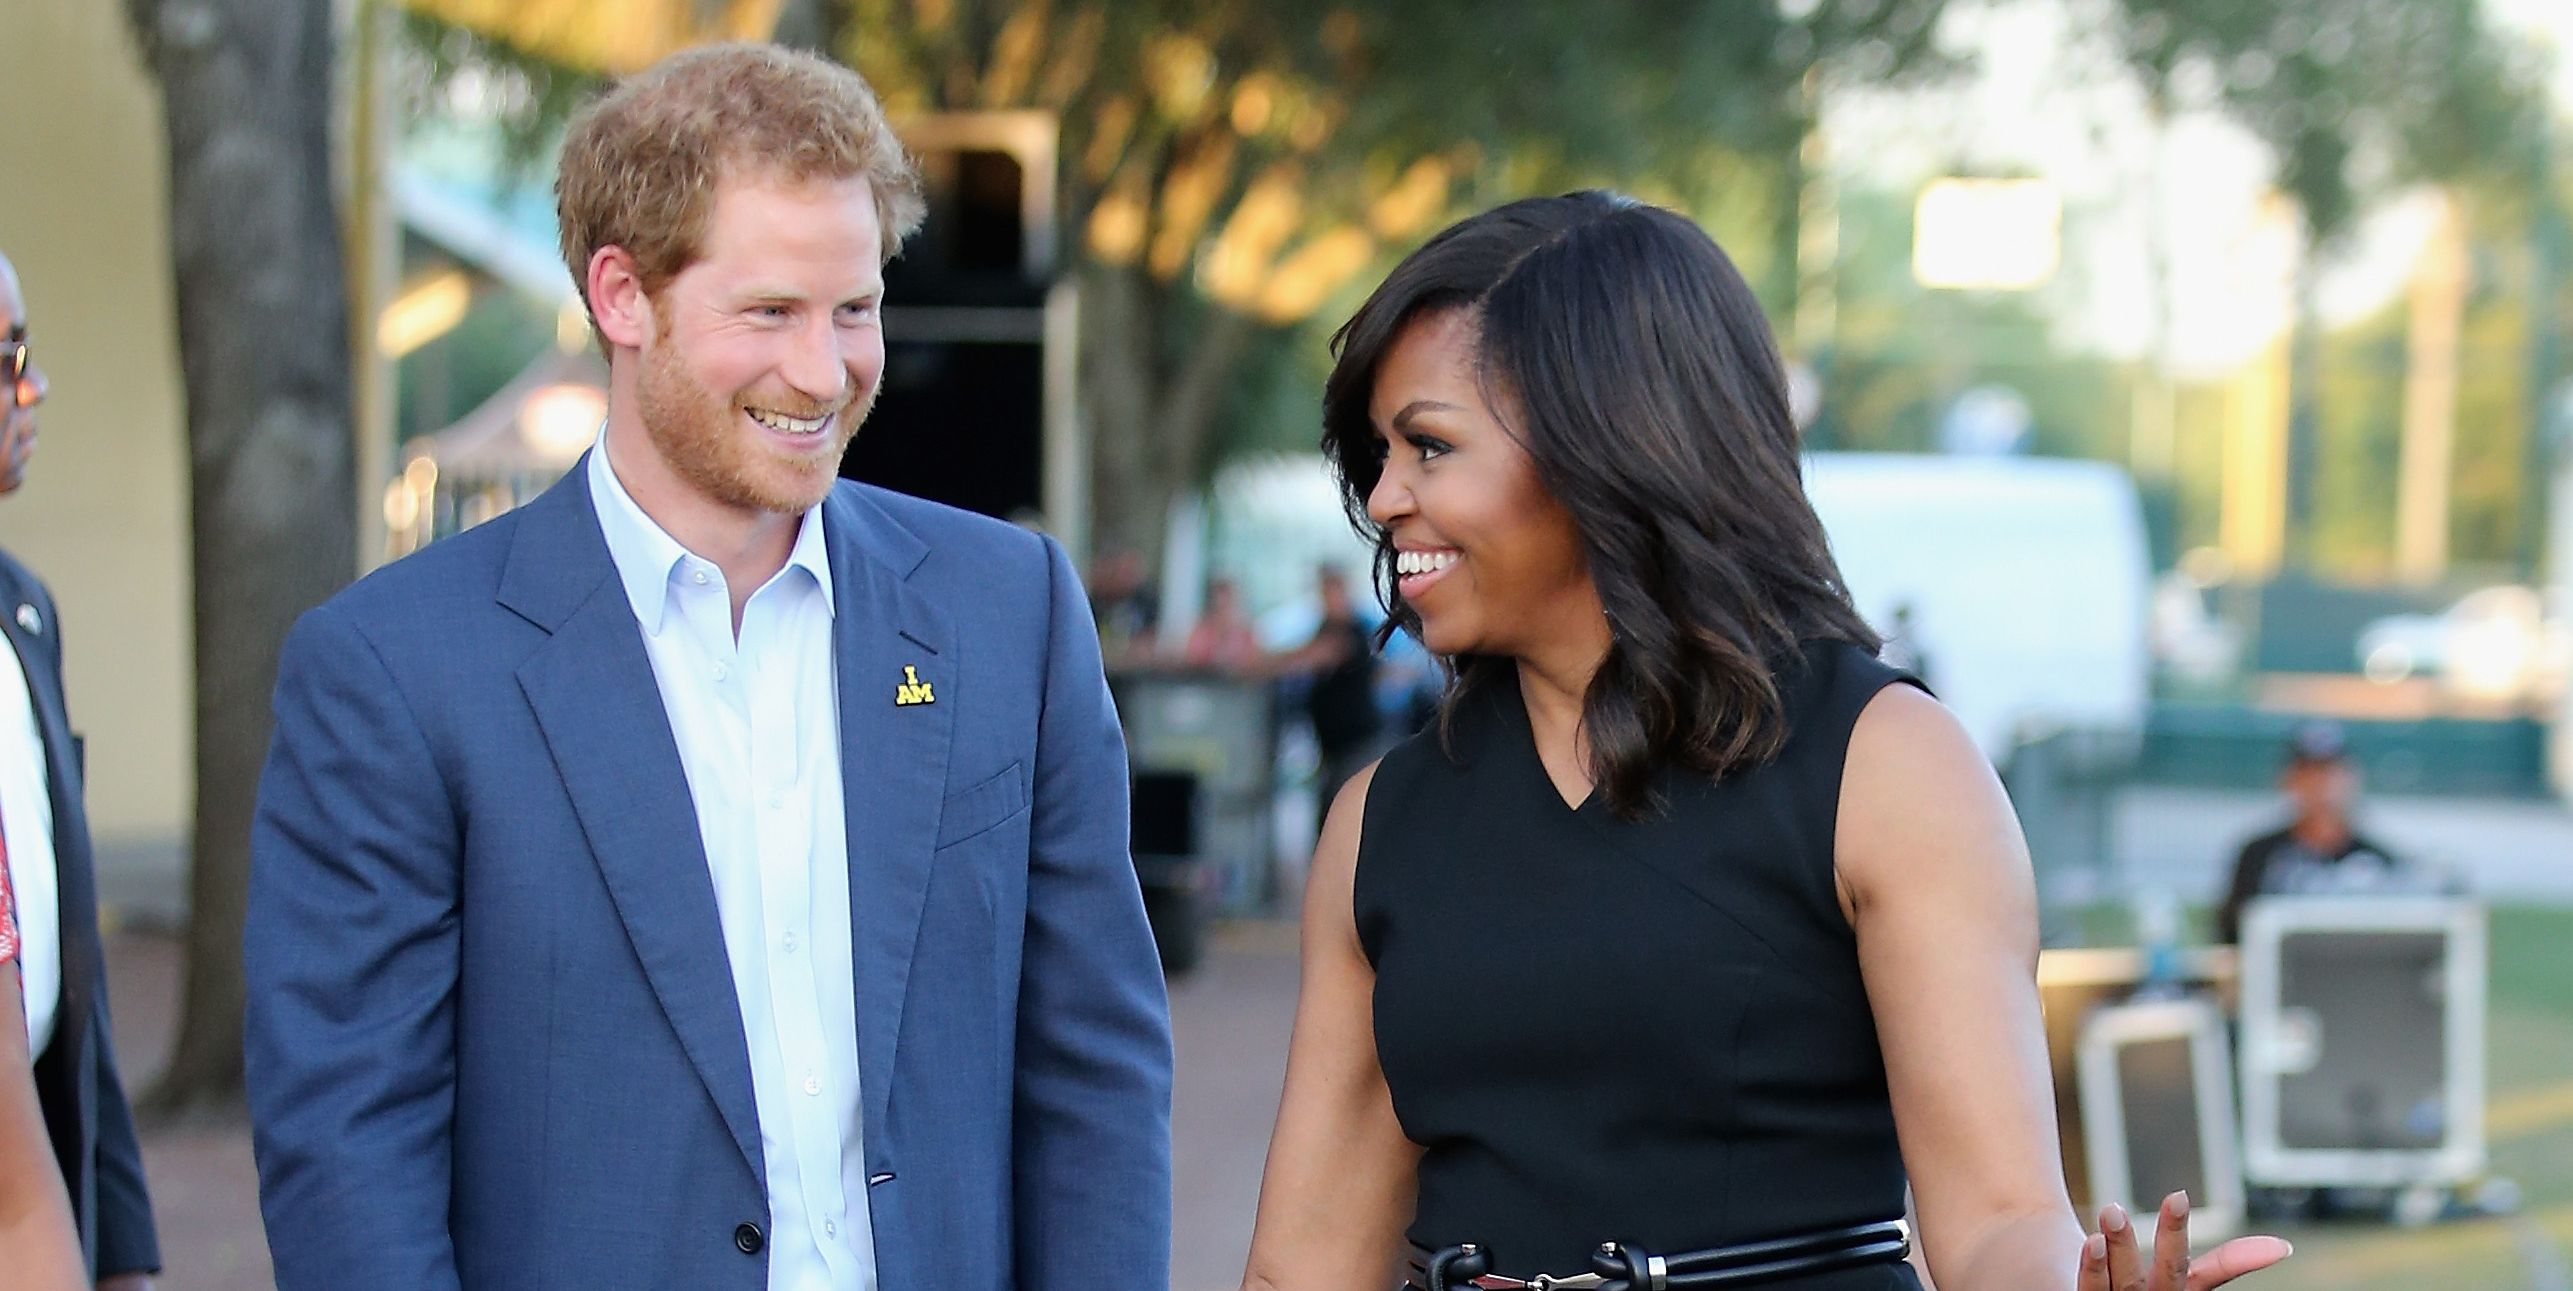 Michelle Obama's Reaction to Prince Harry and Meghan Markle's Baby News Is the Best Thing Ever